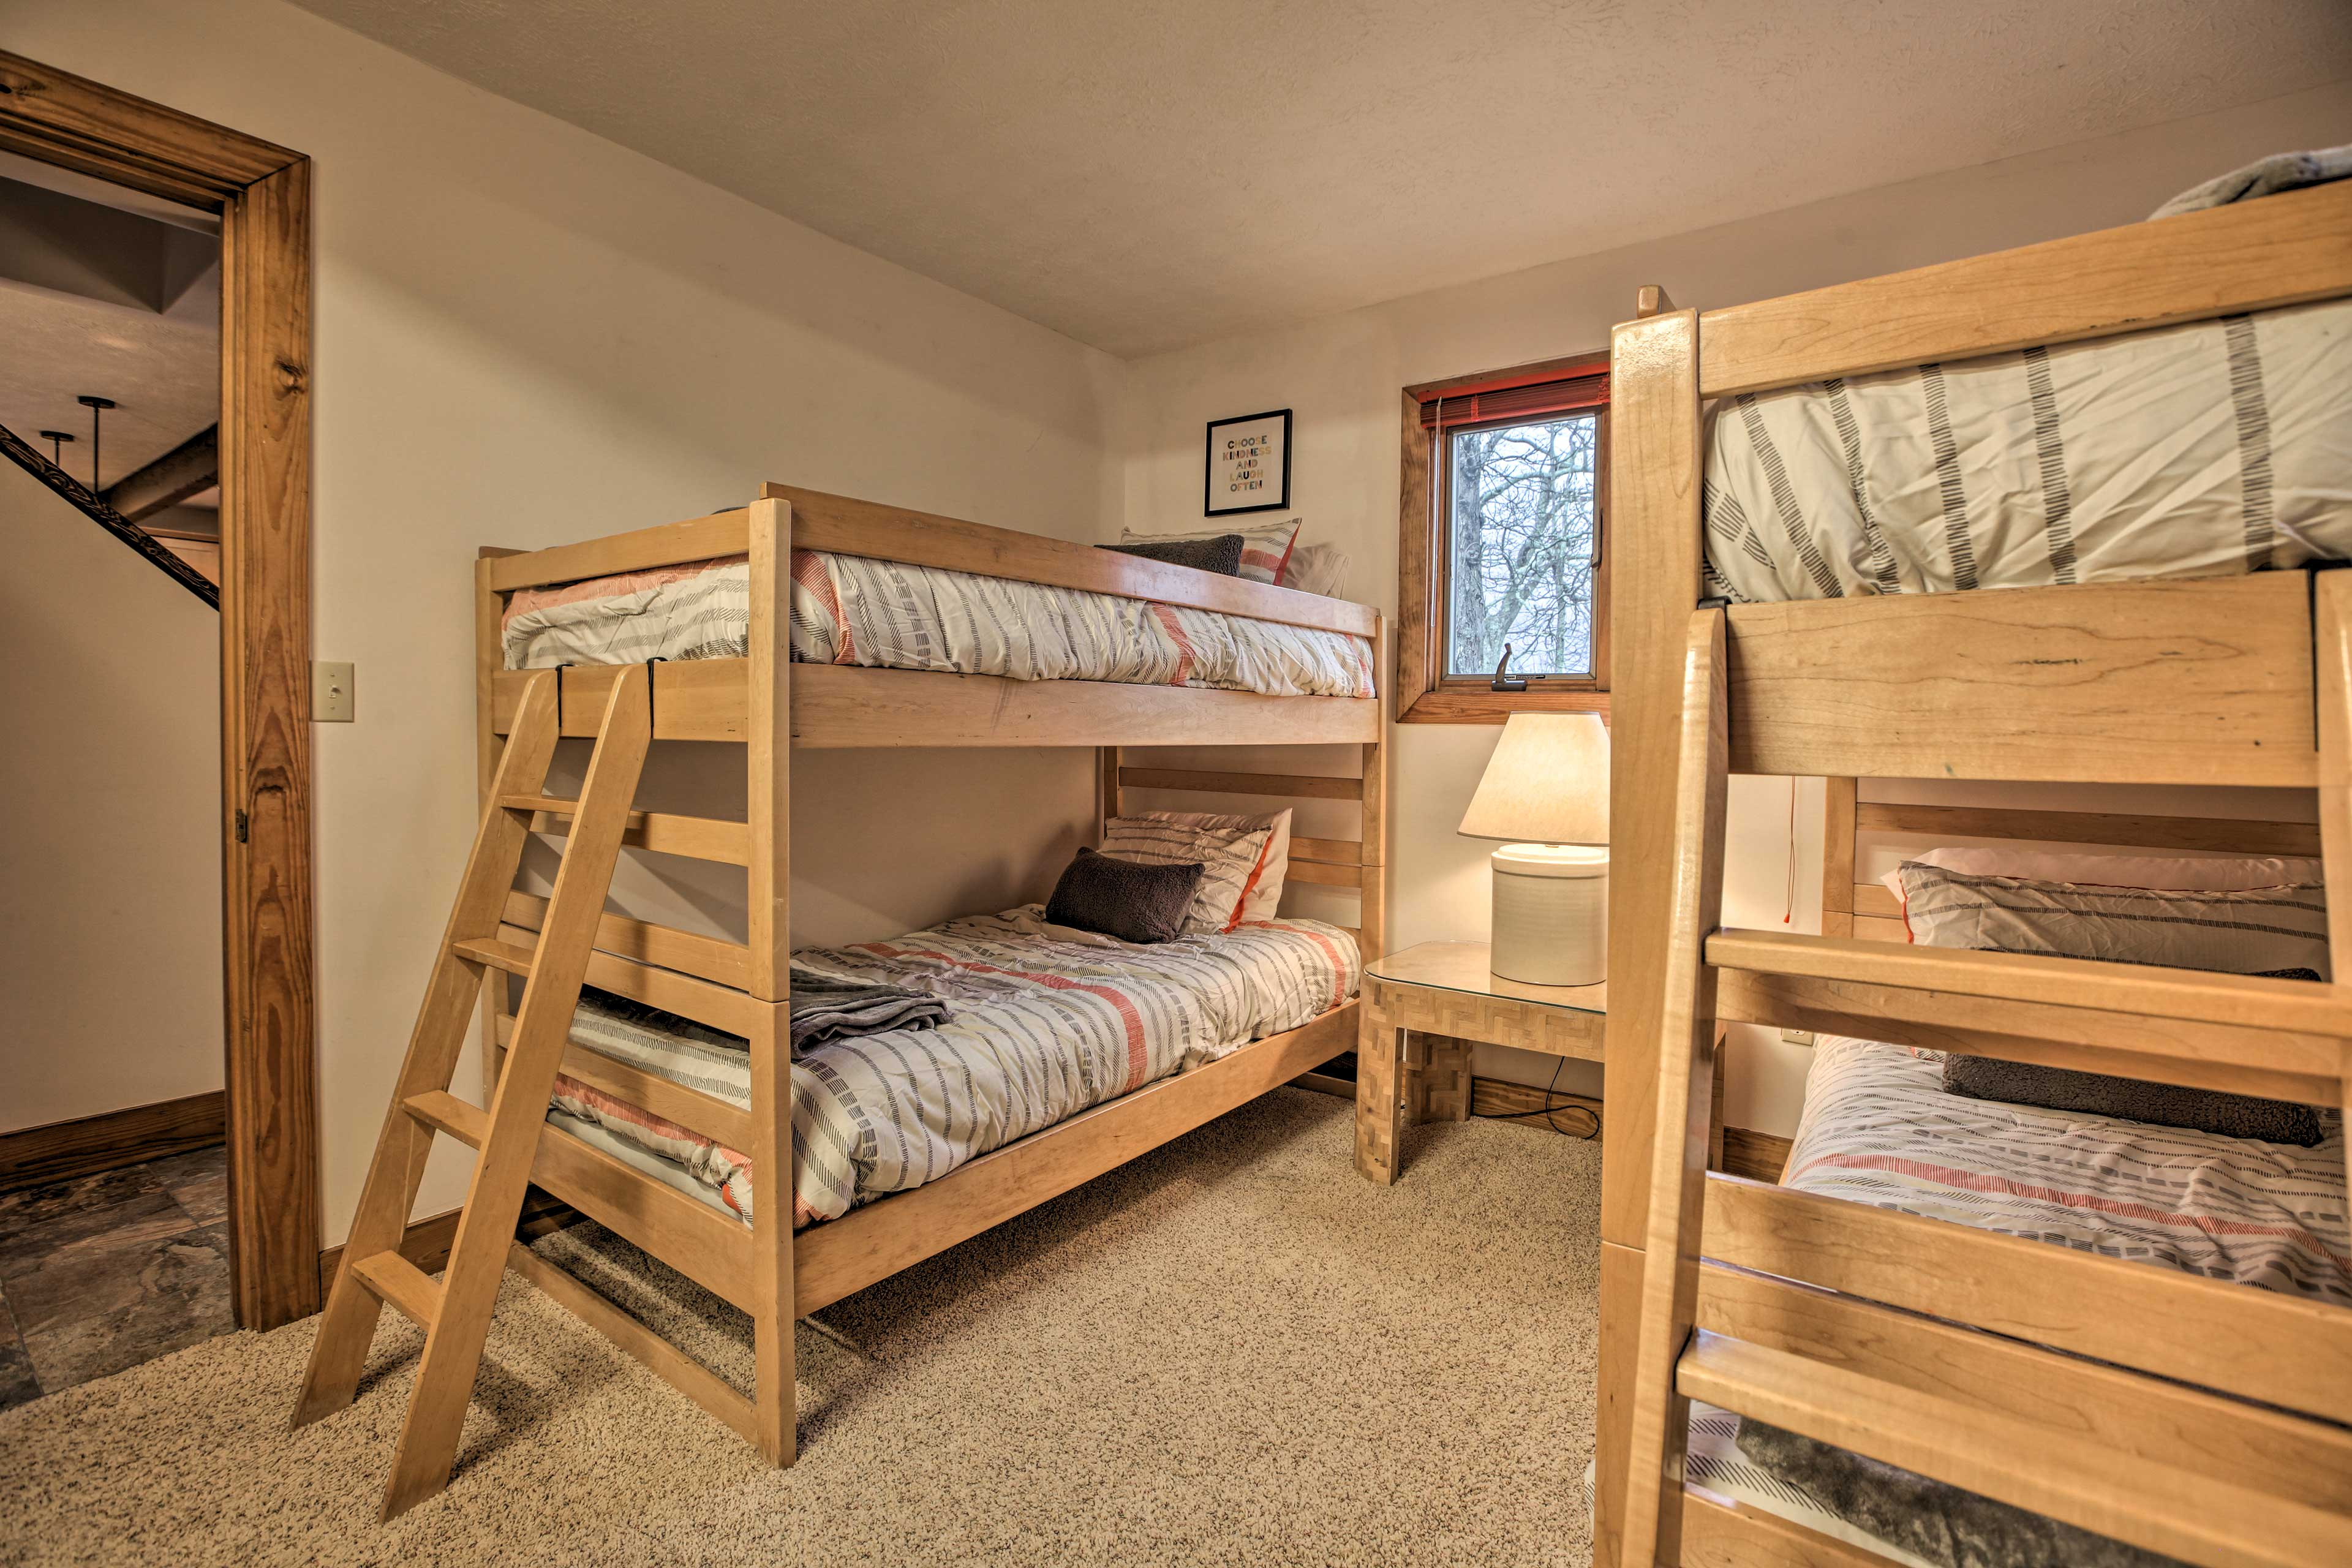 This room has 4 twin beds for up to 4 guests.